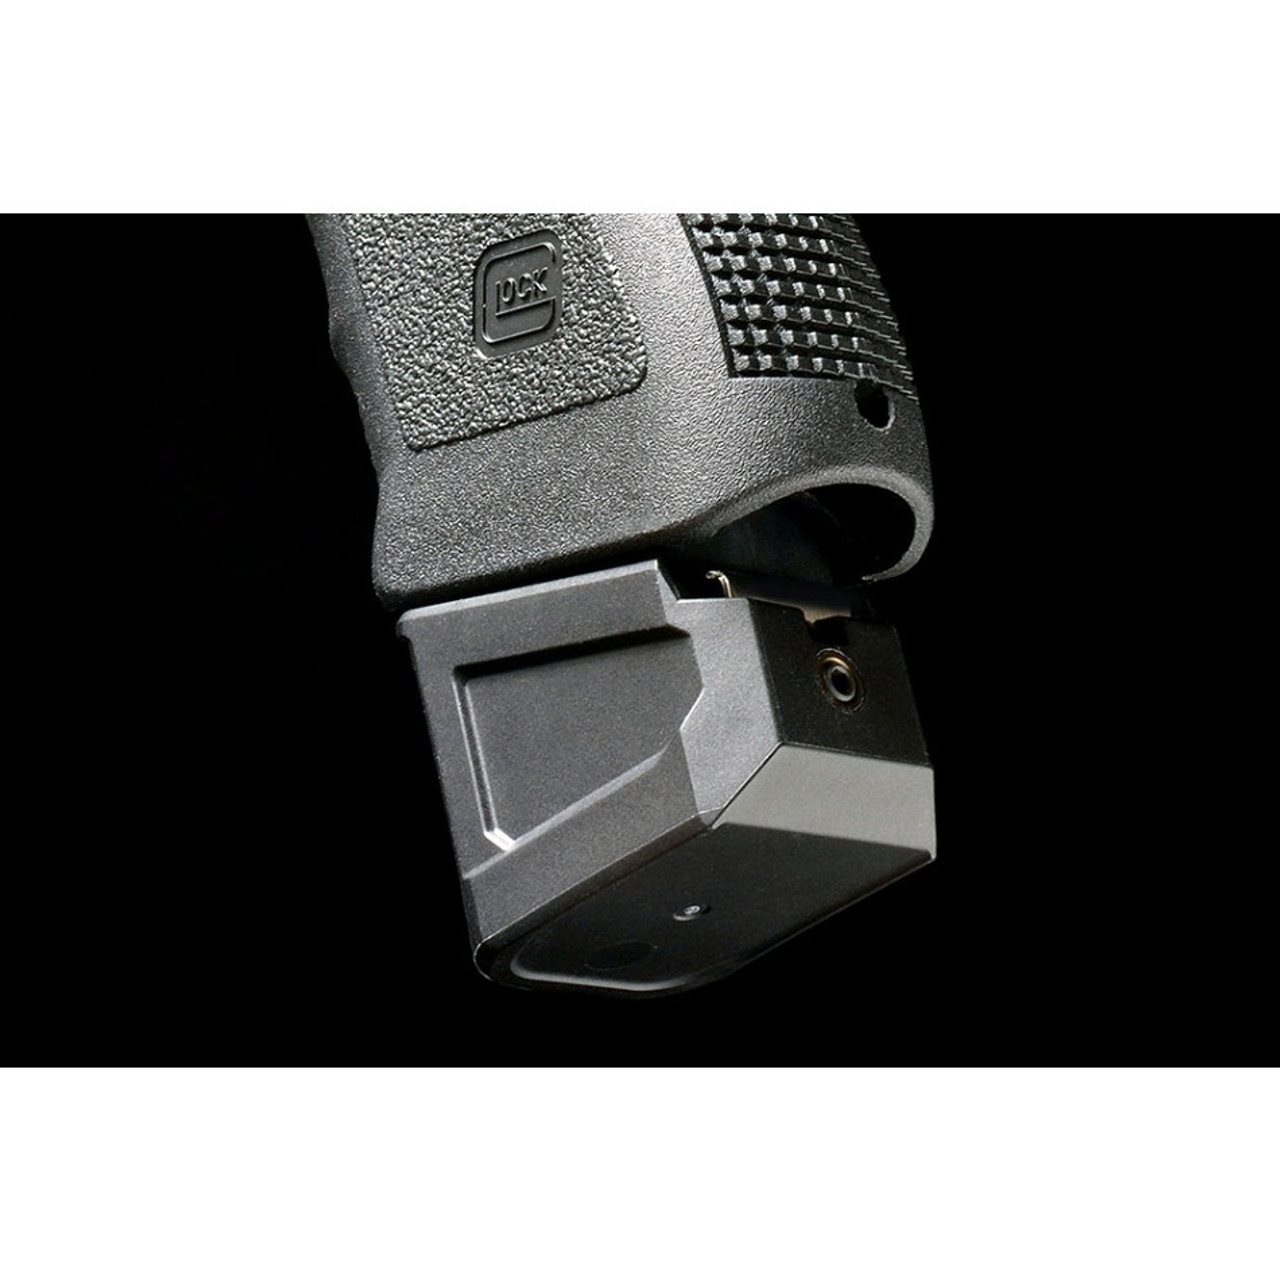 Strike Industries Extended Magazine Plate for GLOCK™ G19(9mm) / Glock 23(40cal)